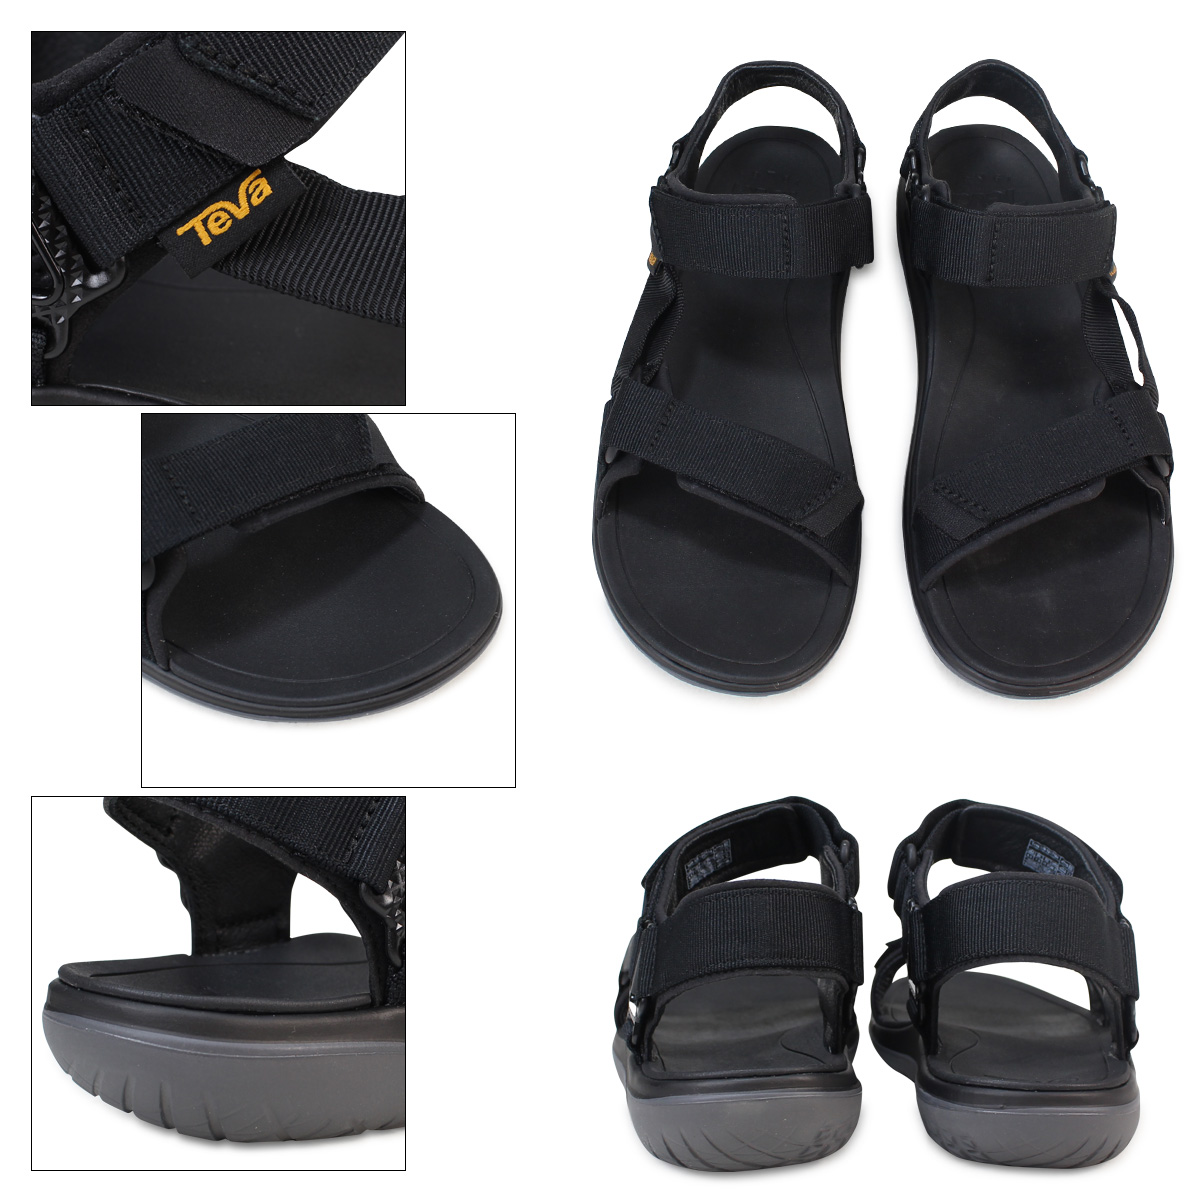 be82201b7 Teva Teva Because I developed sports sandals with a strap for the first  time in the world